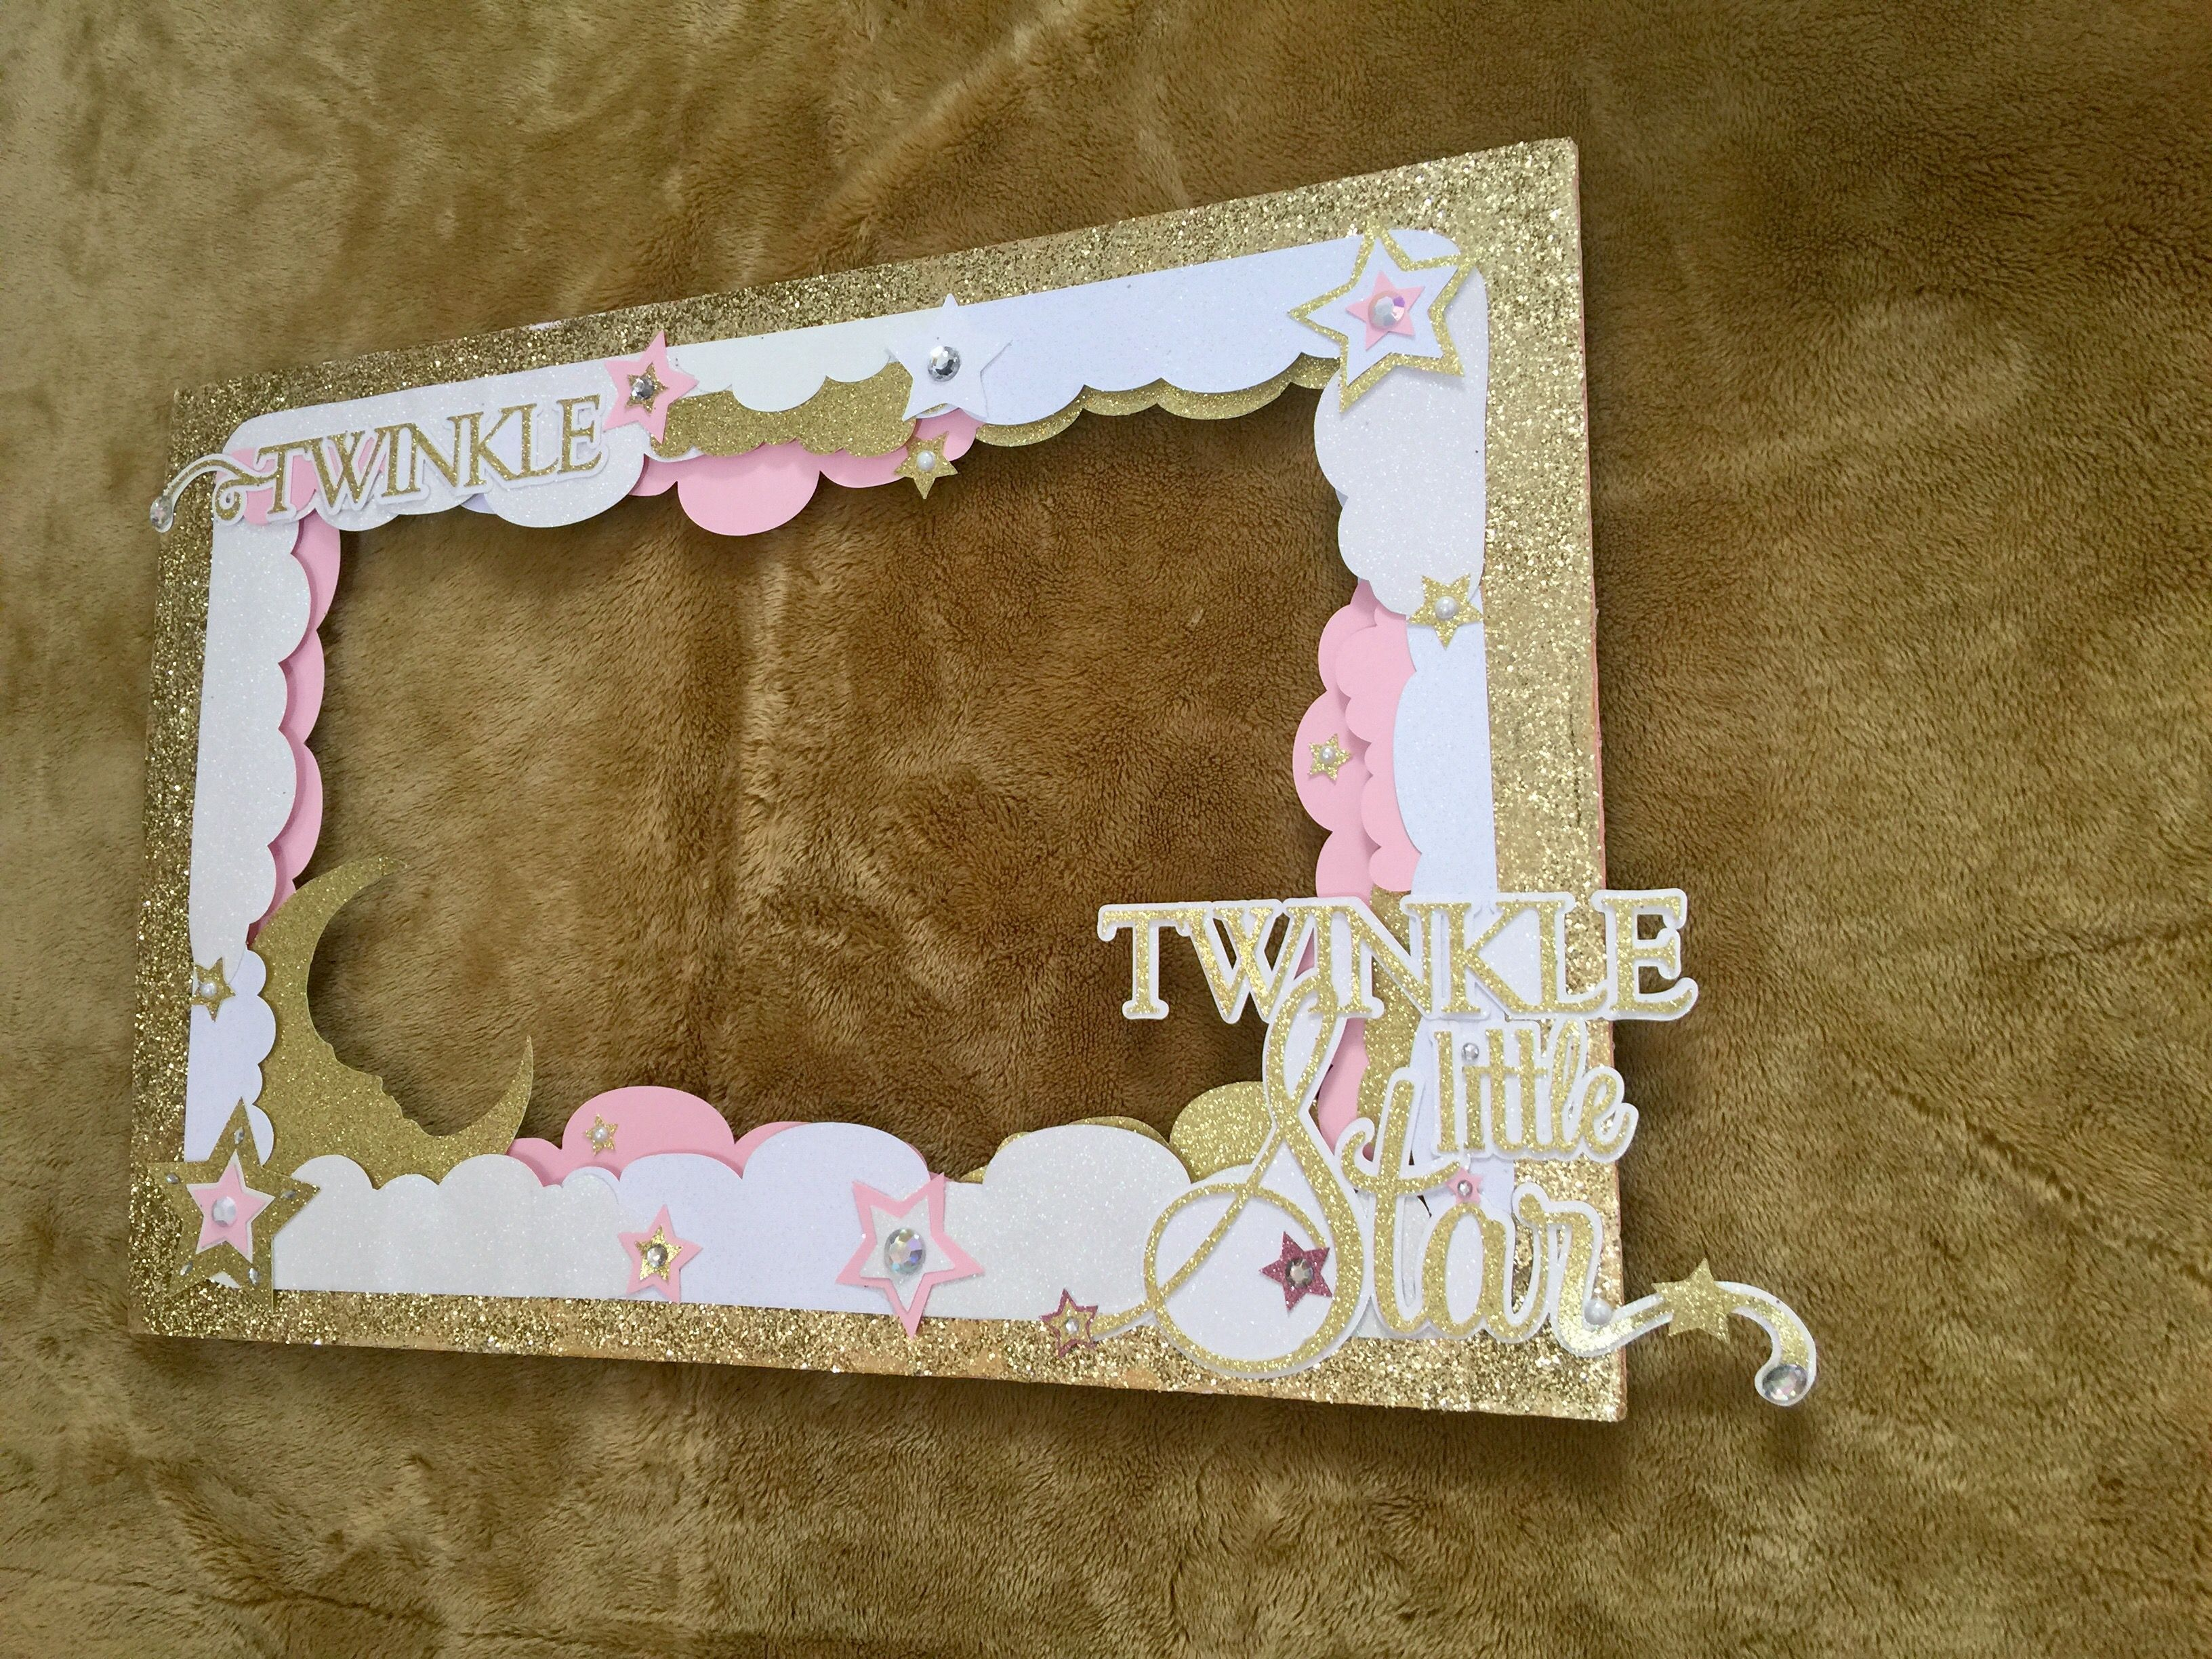 All Pink Twinkle Twinkle Little Star Photo Frame For Gender Reveal